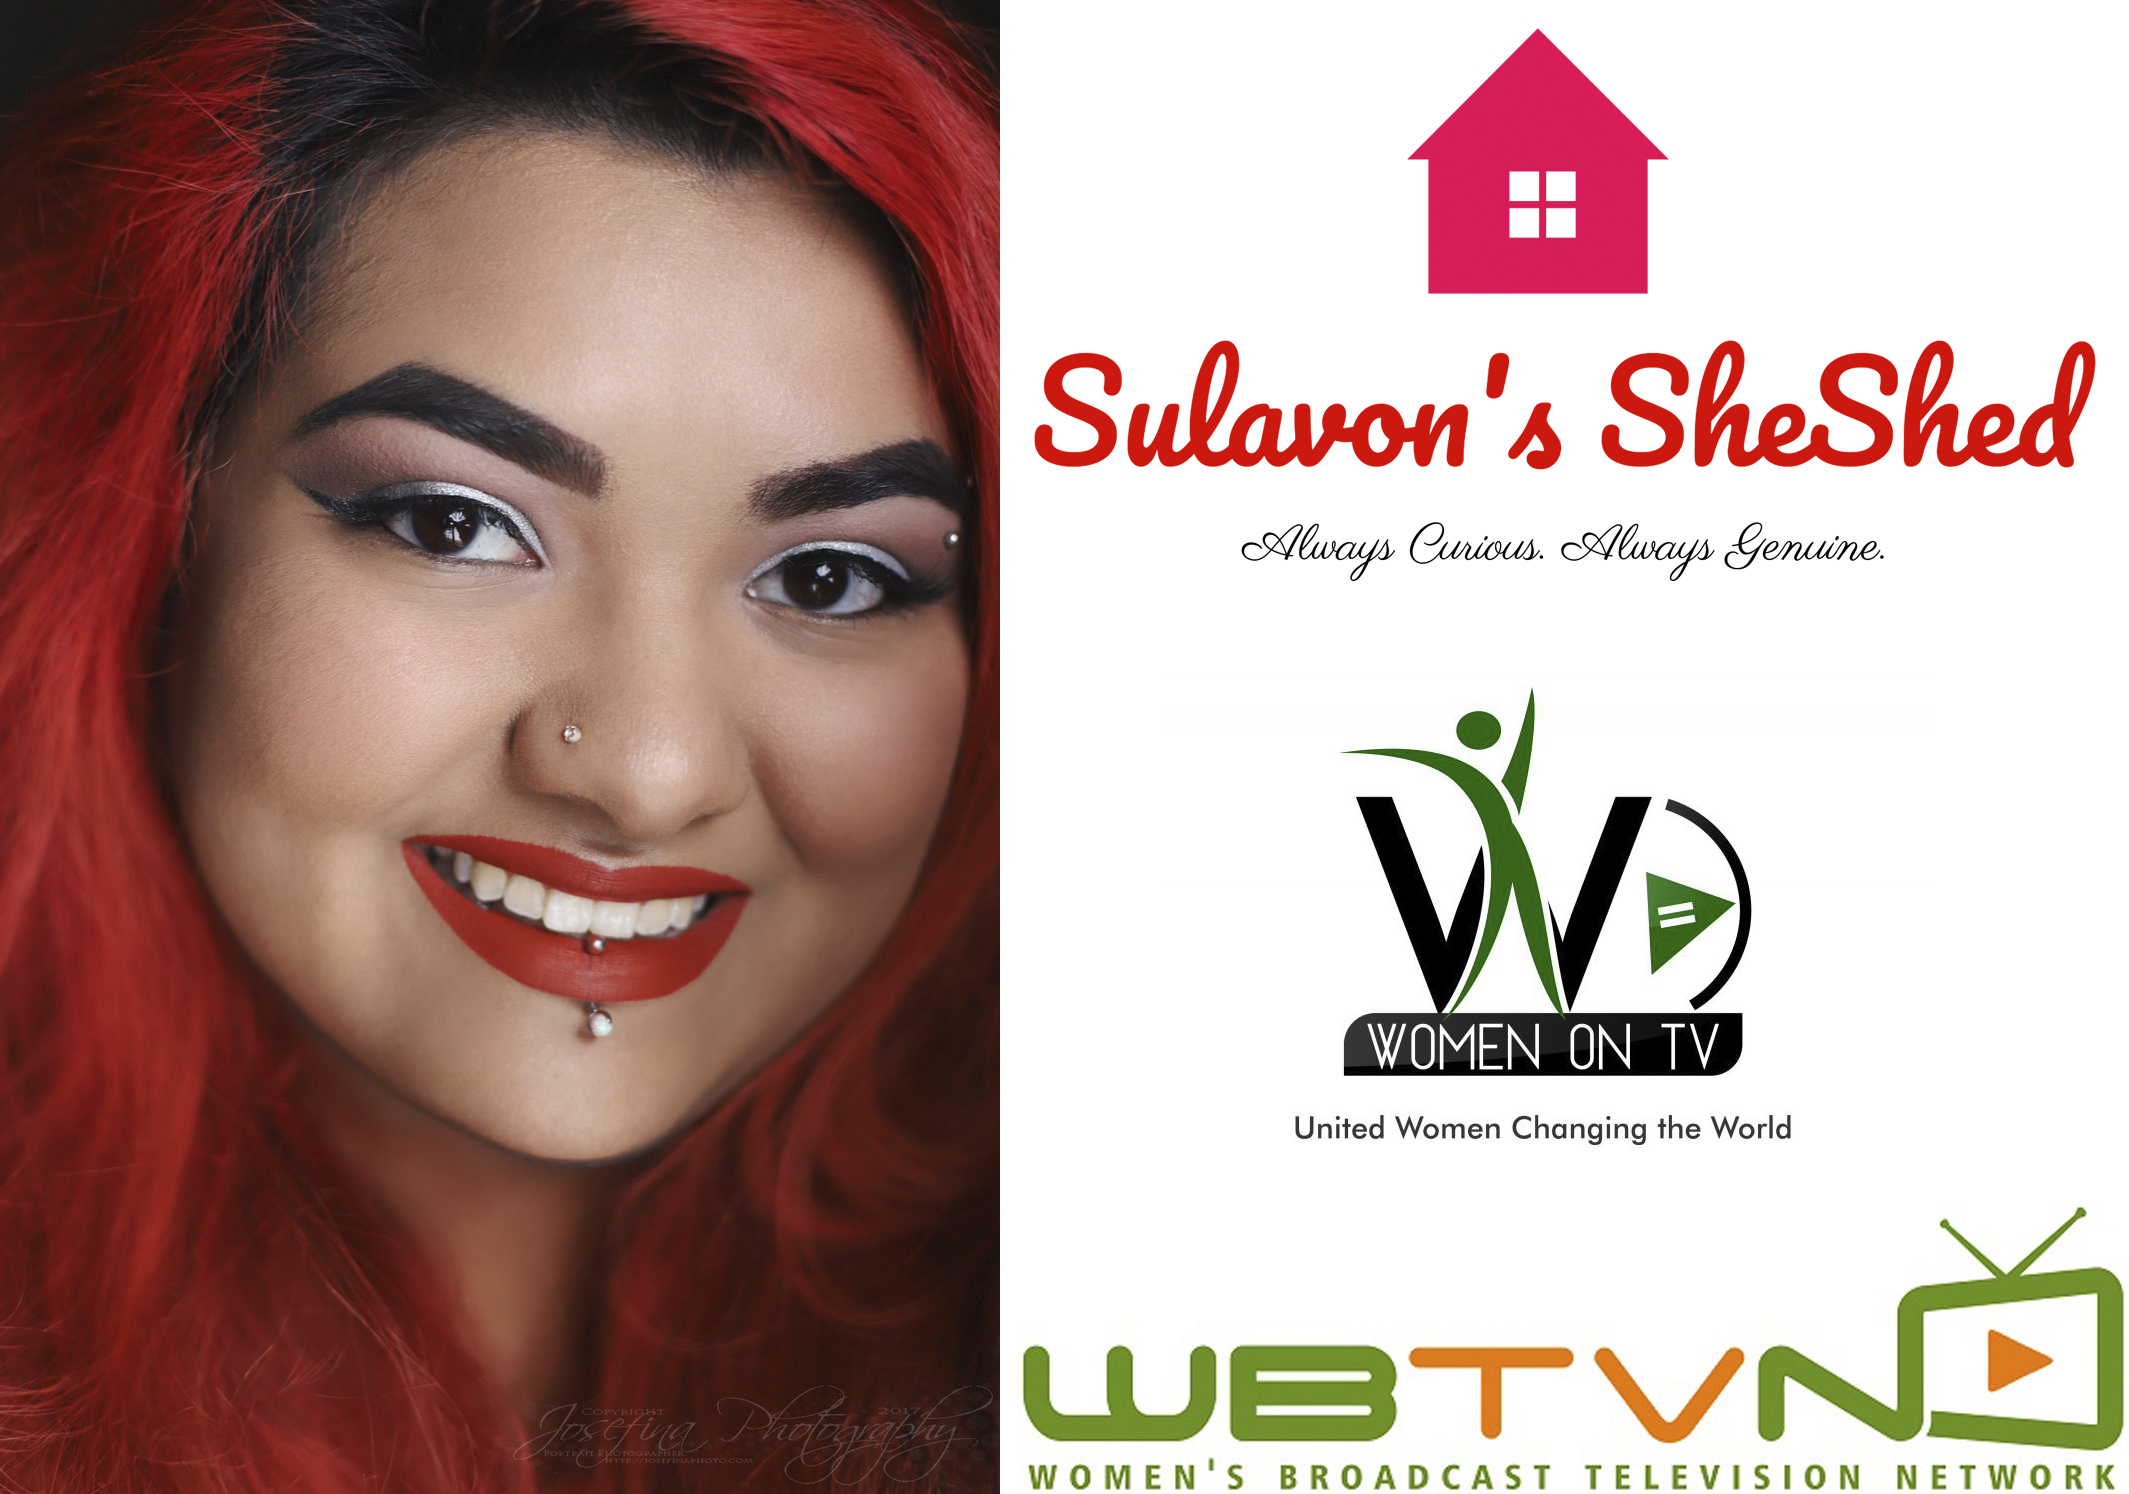 The Interview. - Sulavon's SheShed on the Women's Broadcast Television Network.Here, Josefina talks about what it's been like as a female photographer in a very male-dominated industry, where/how she got her start, who inspires her, what irks her THE MOST about social media, and what it's been like developing a business in this technology-filled era!